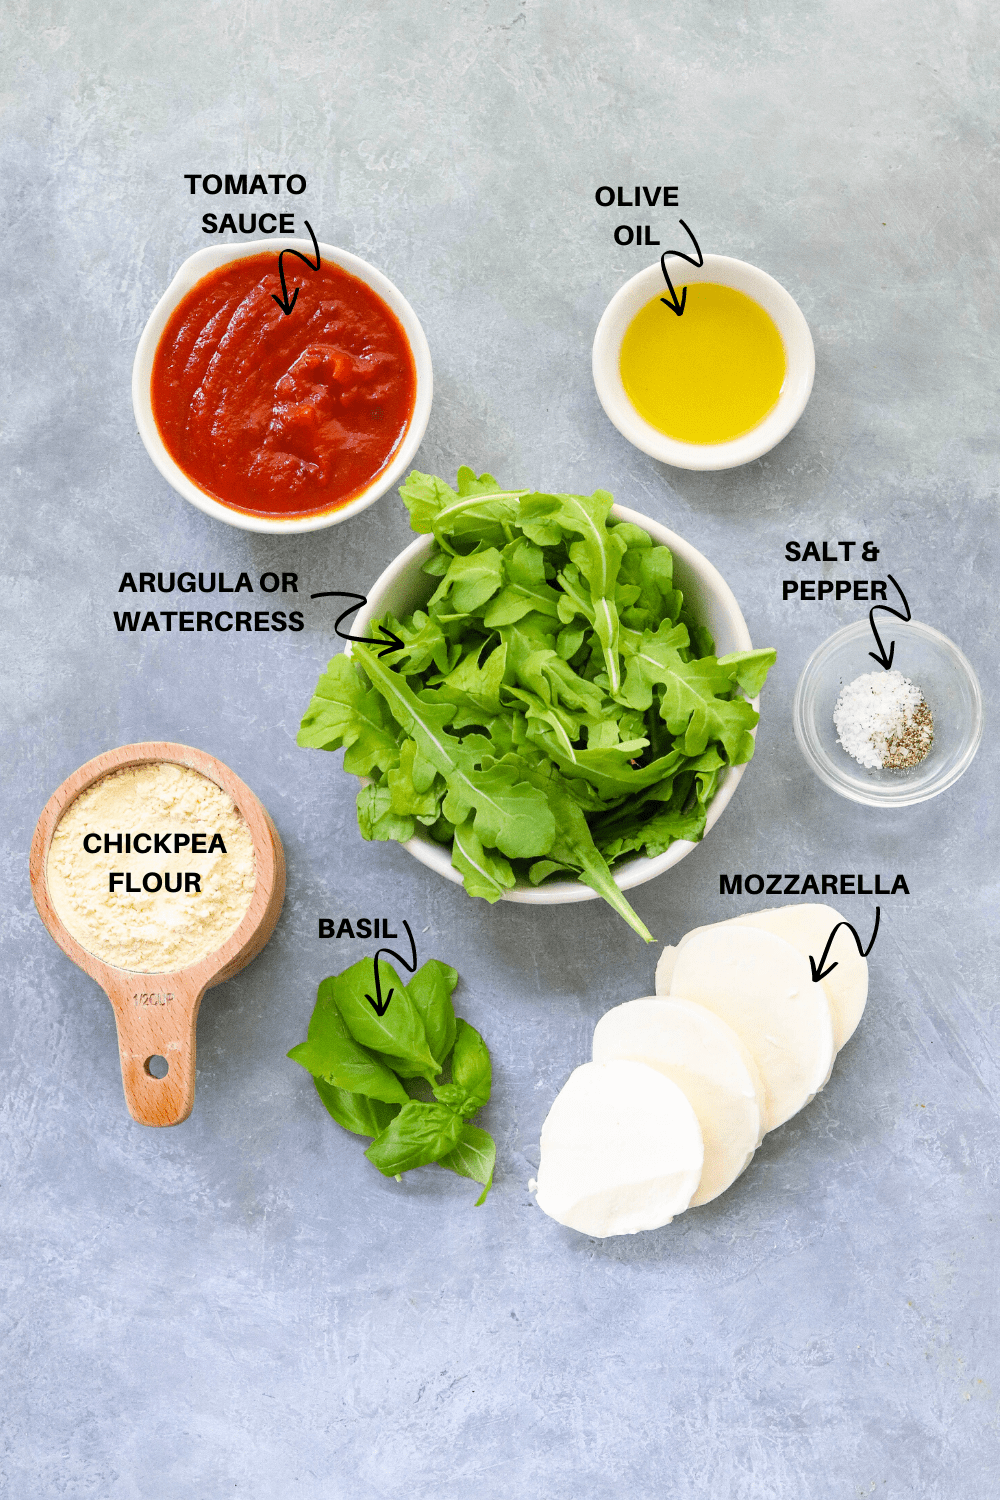 tomato sauce, greens, flour, oil, salt and pepper on a gray board